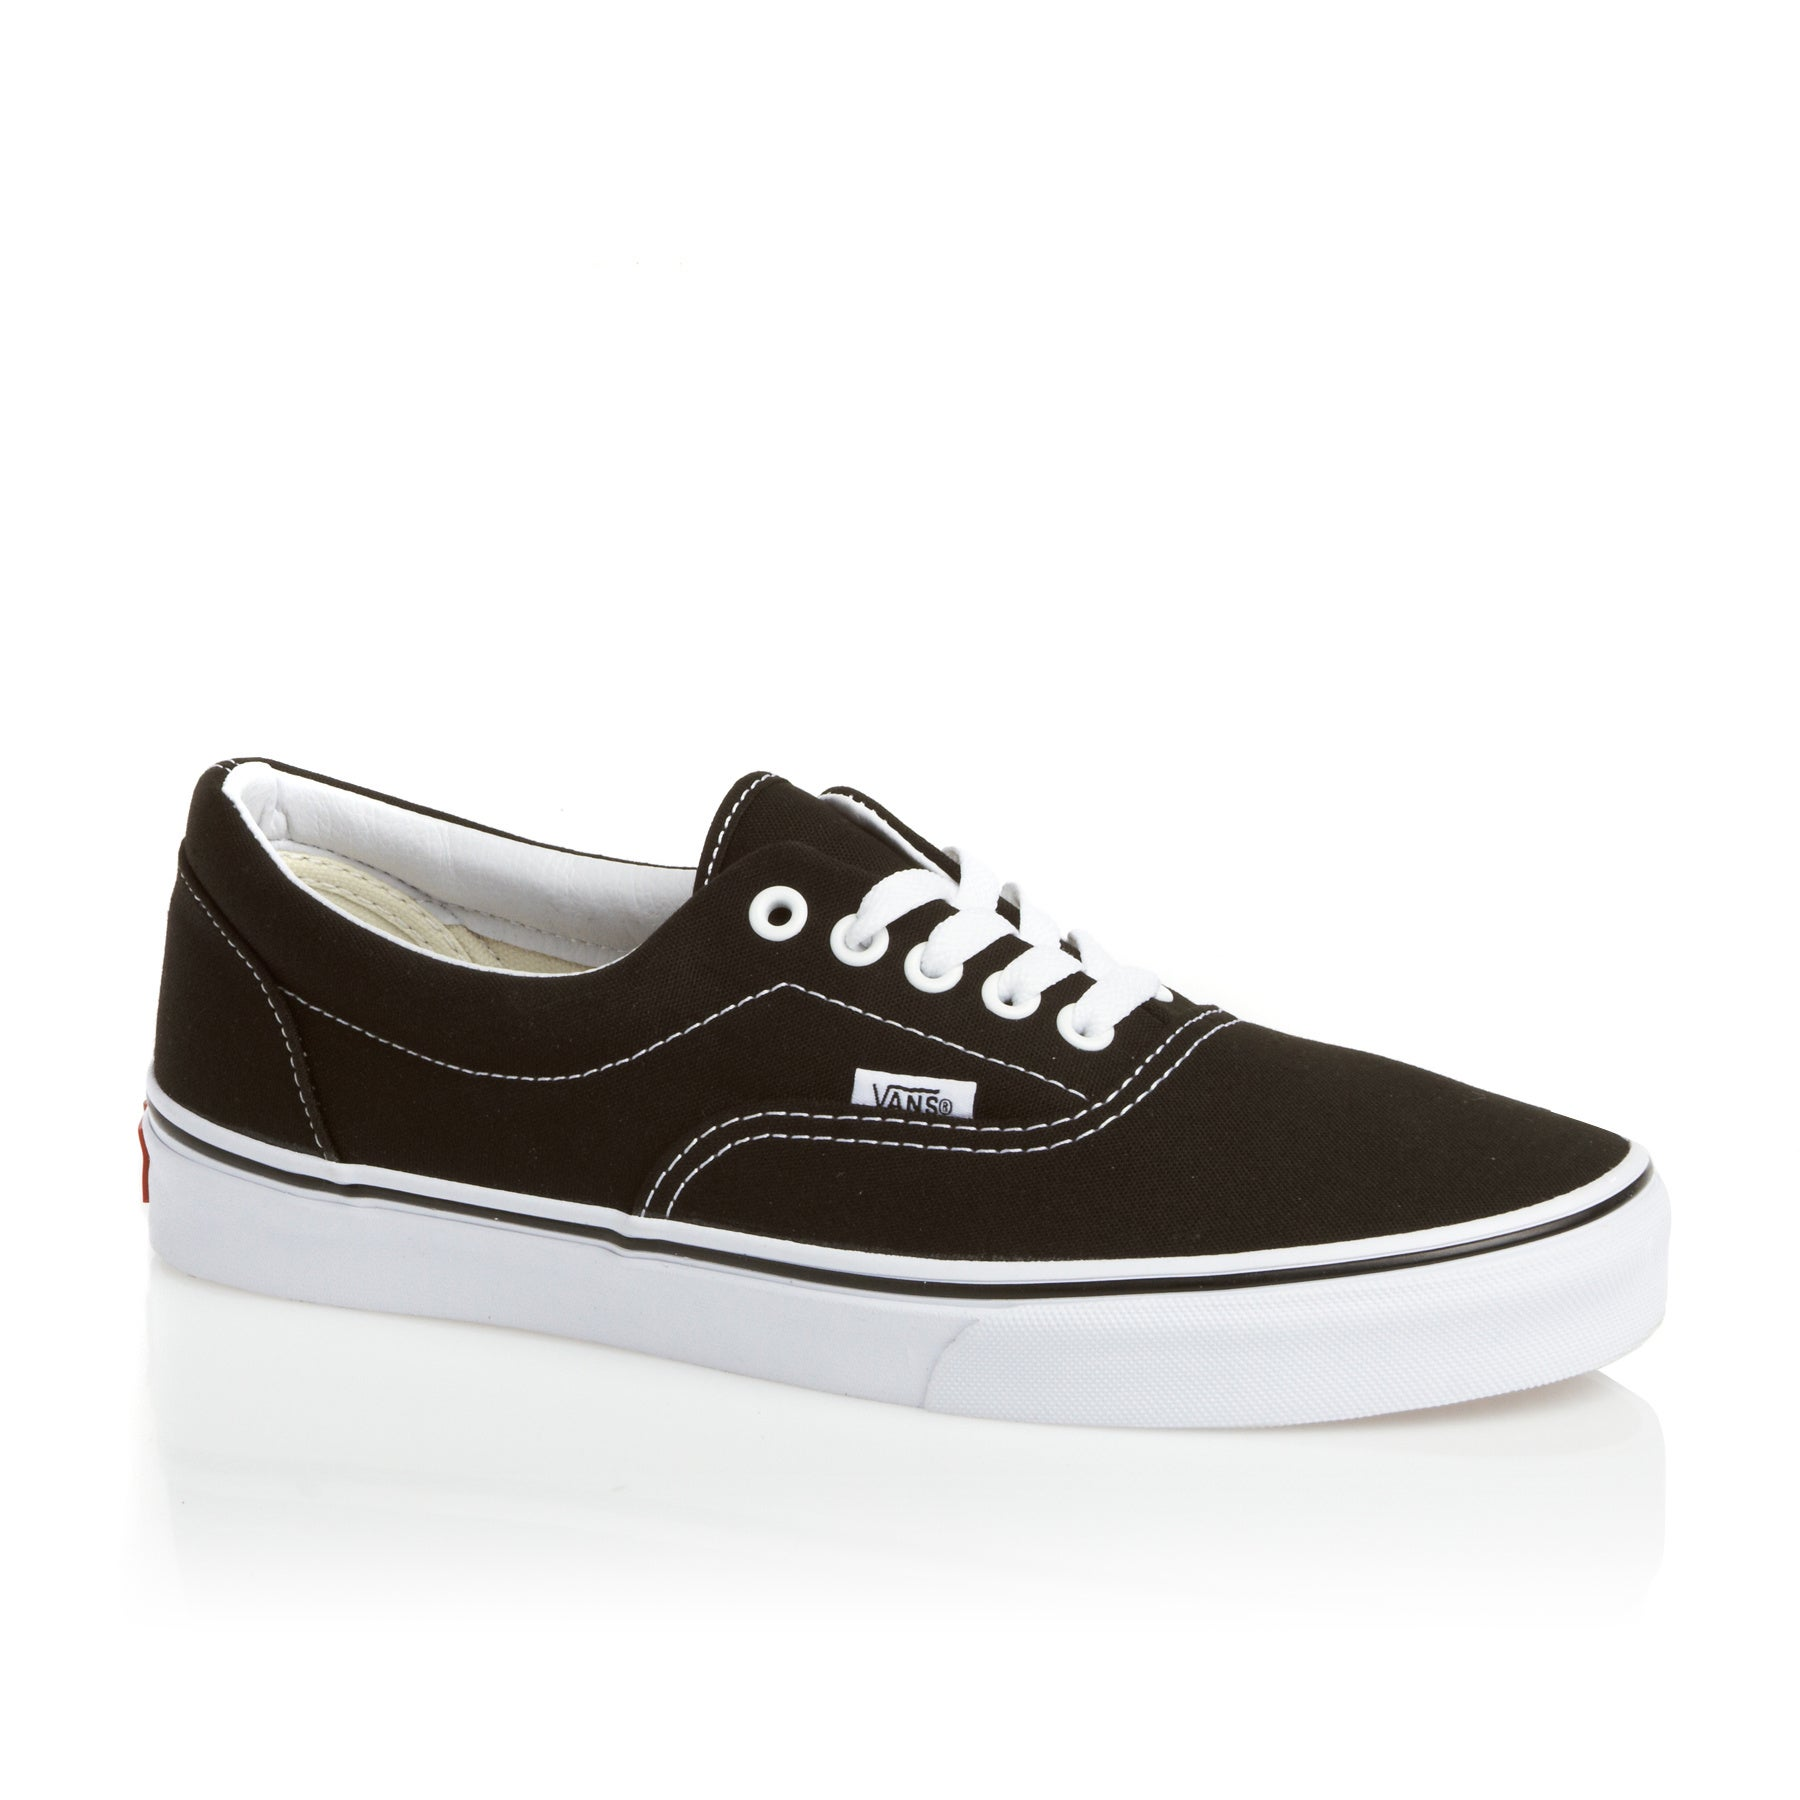 abd7aecbd0 Vans Era Shoes available from Surfdome